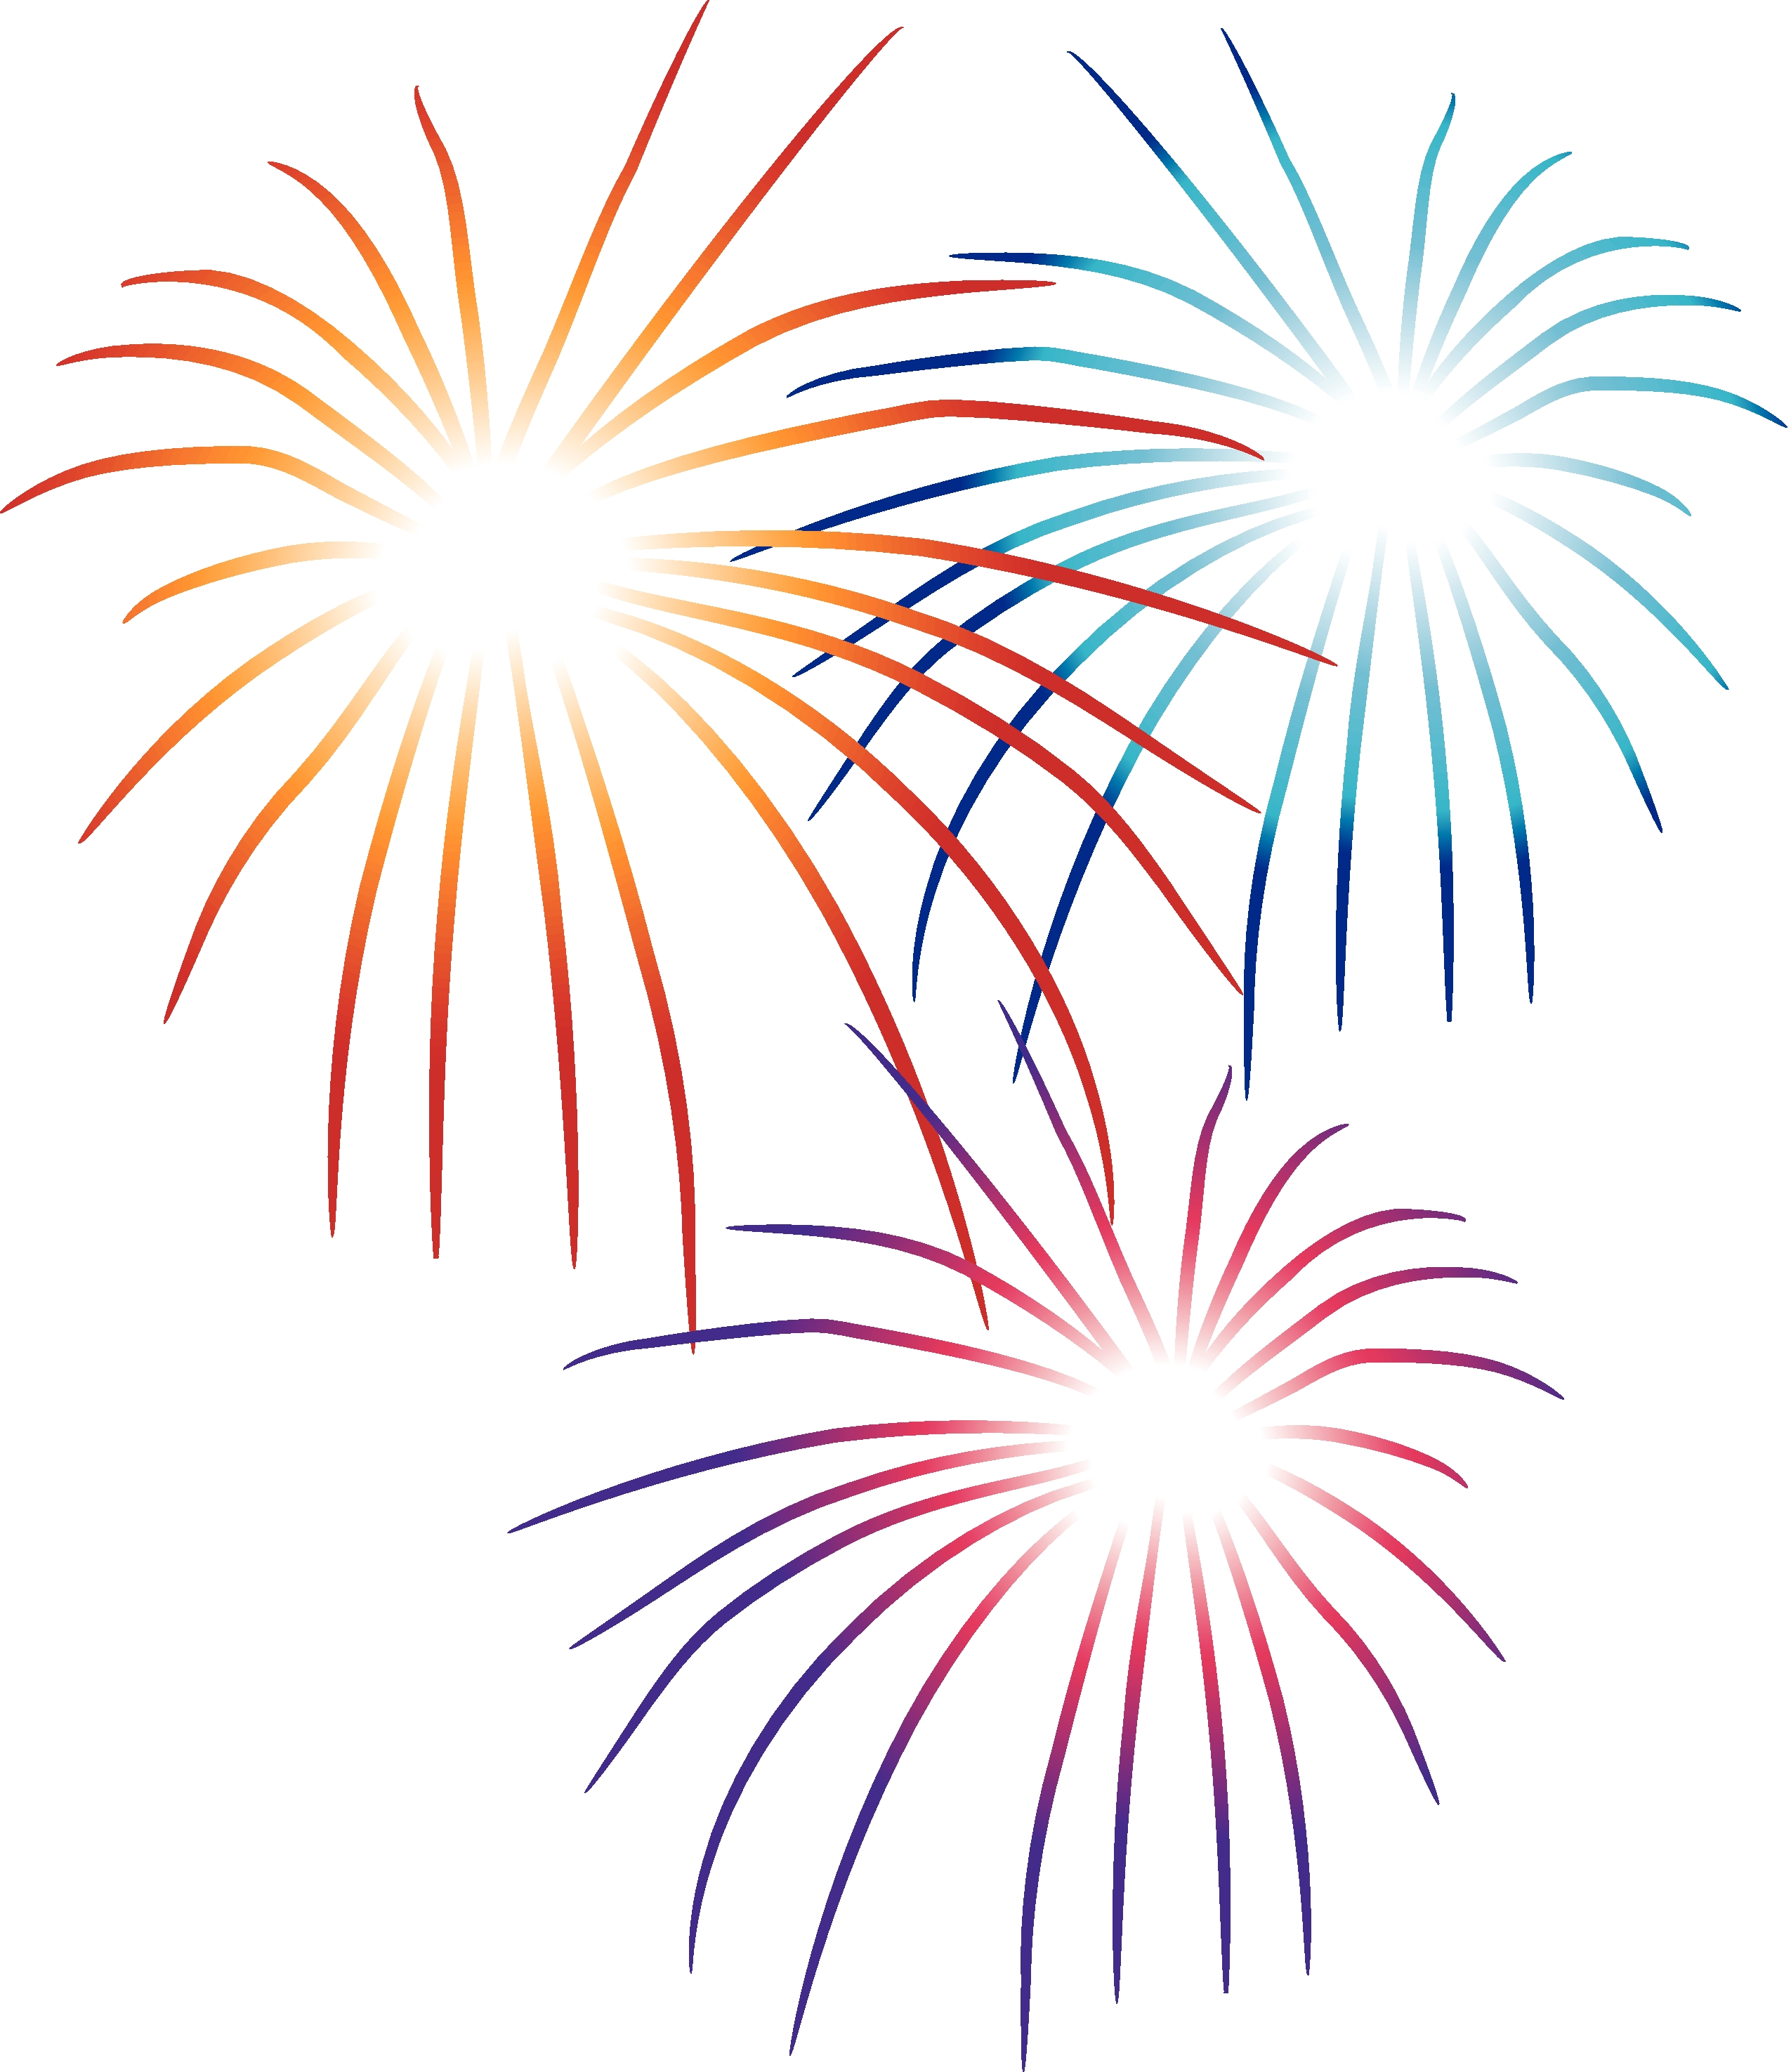 Free fireworks clipart - Fireworks Pictures Free Clipart